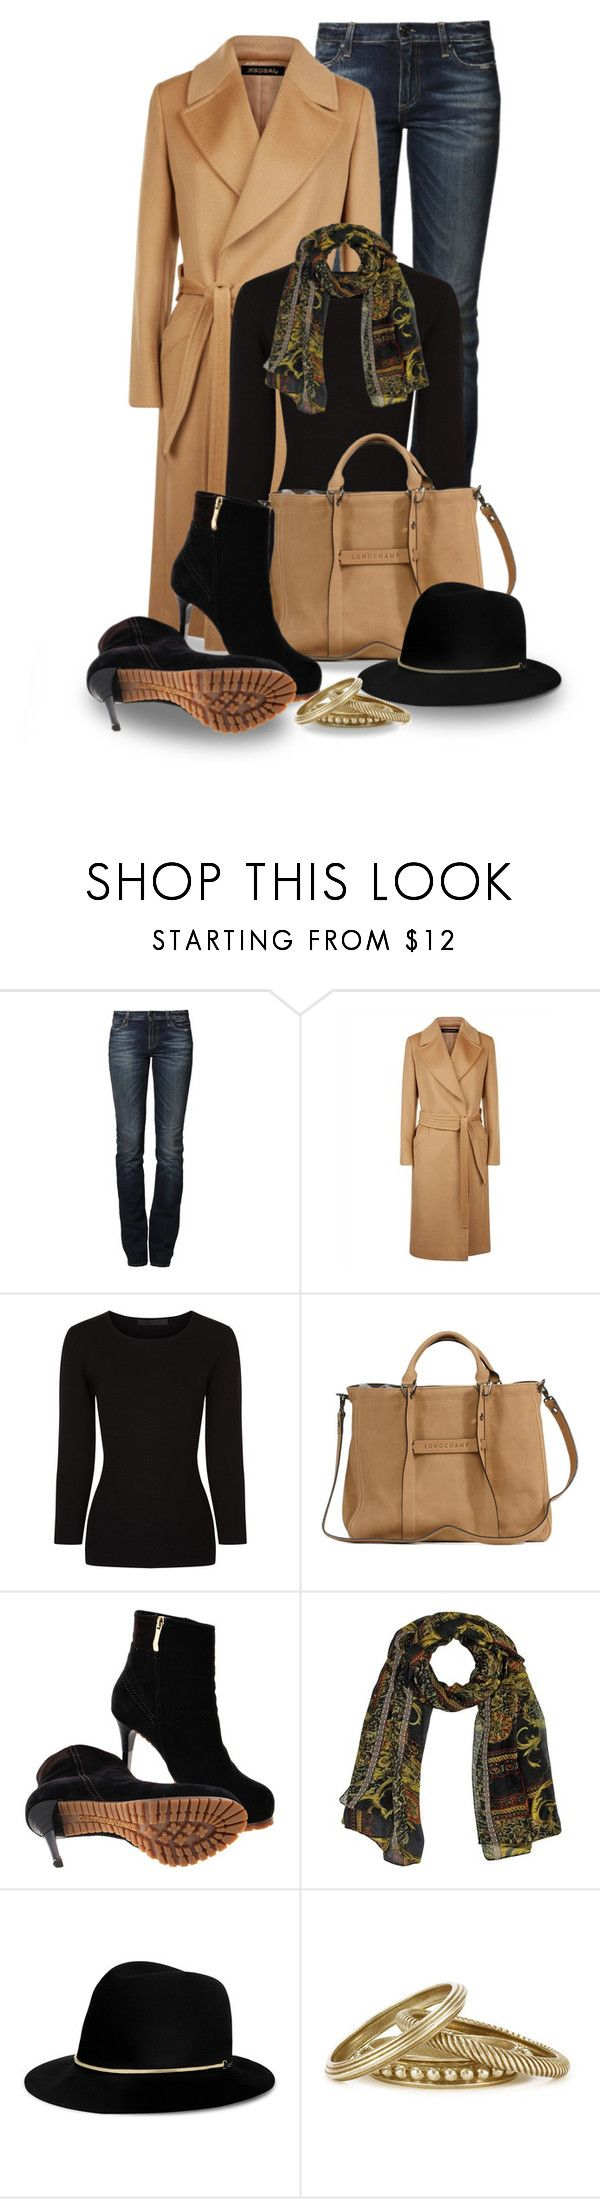 """""""Camel Wool Wrap Coat"""" by snickersmother ❤ liked on Polyvore featuring True Religion, Jaeger, Alexander Wang, Longchamp, Gianmarco Lorenzi, Janessa Leone and Tory Burch"""